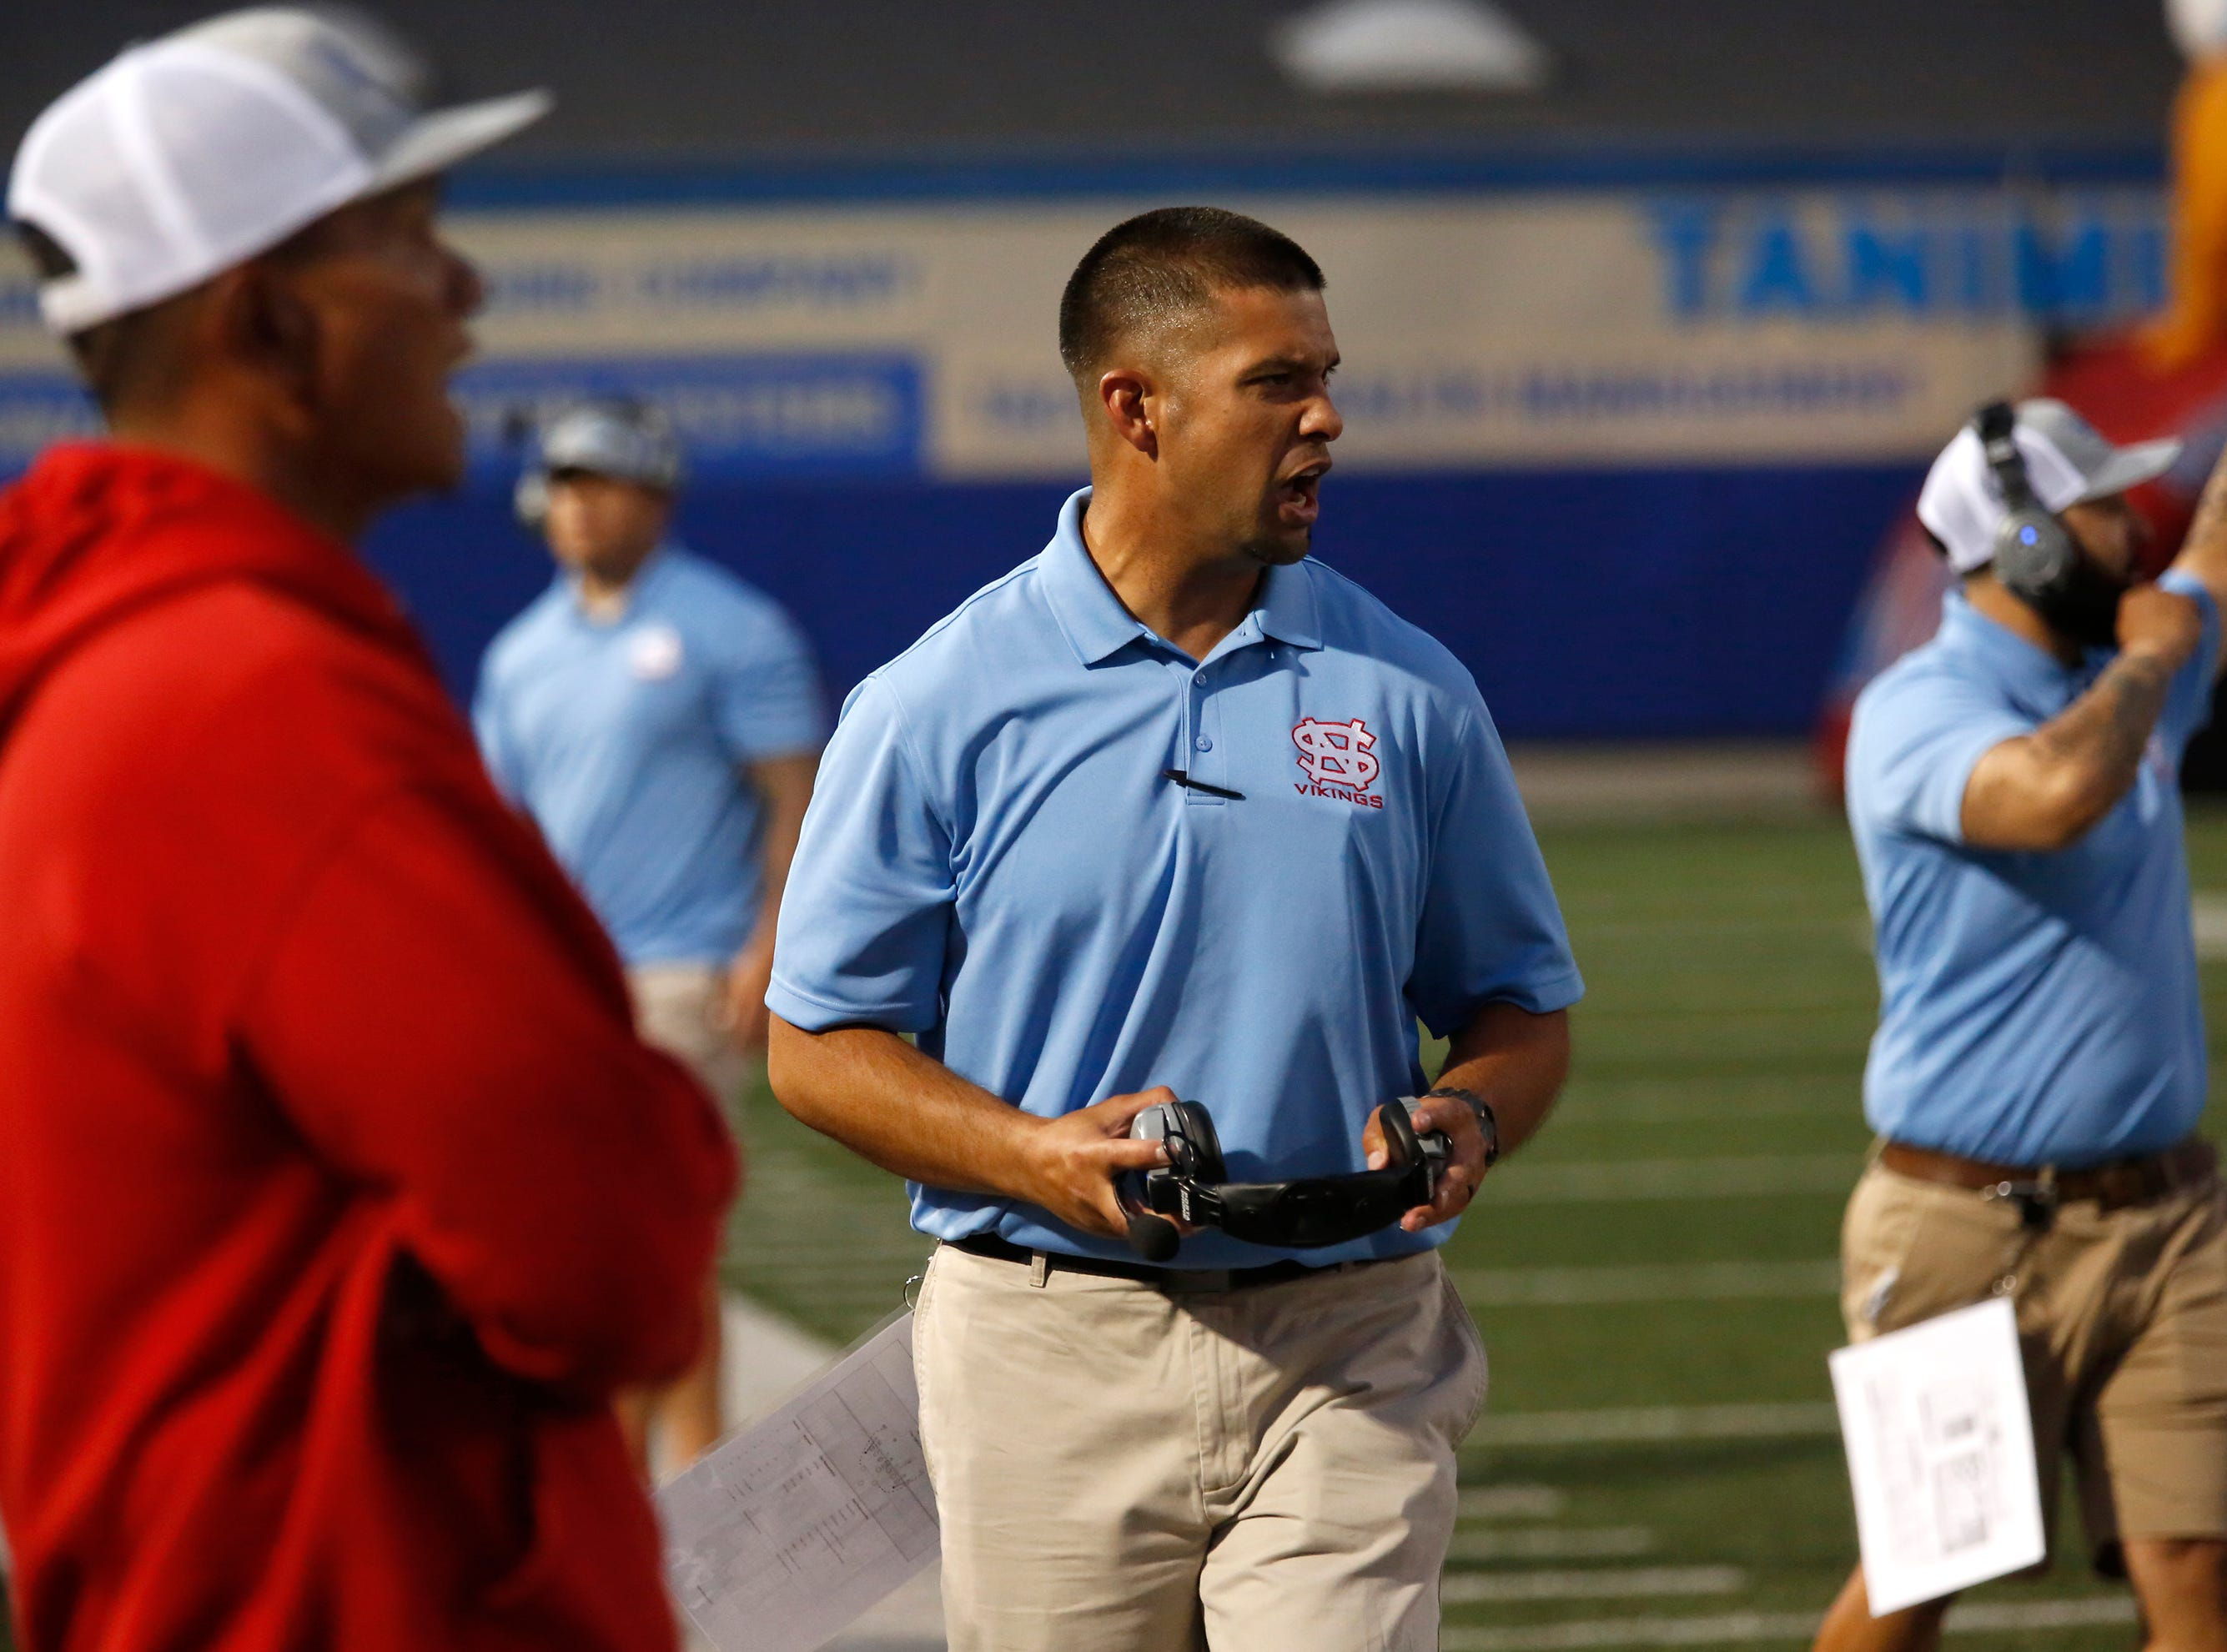 North Salinas's coach yells instructions to his team against North Monterey County during football at Rabobank Stadium in Salinas on Thursday August 23, 2018.